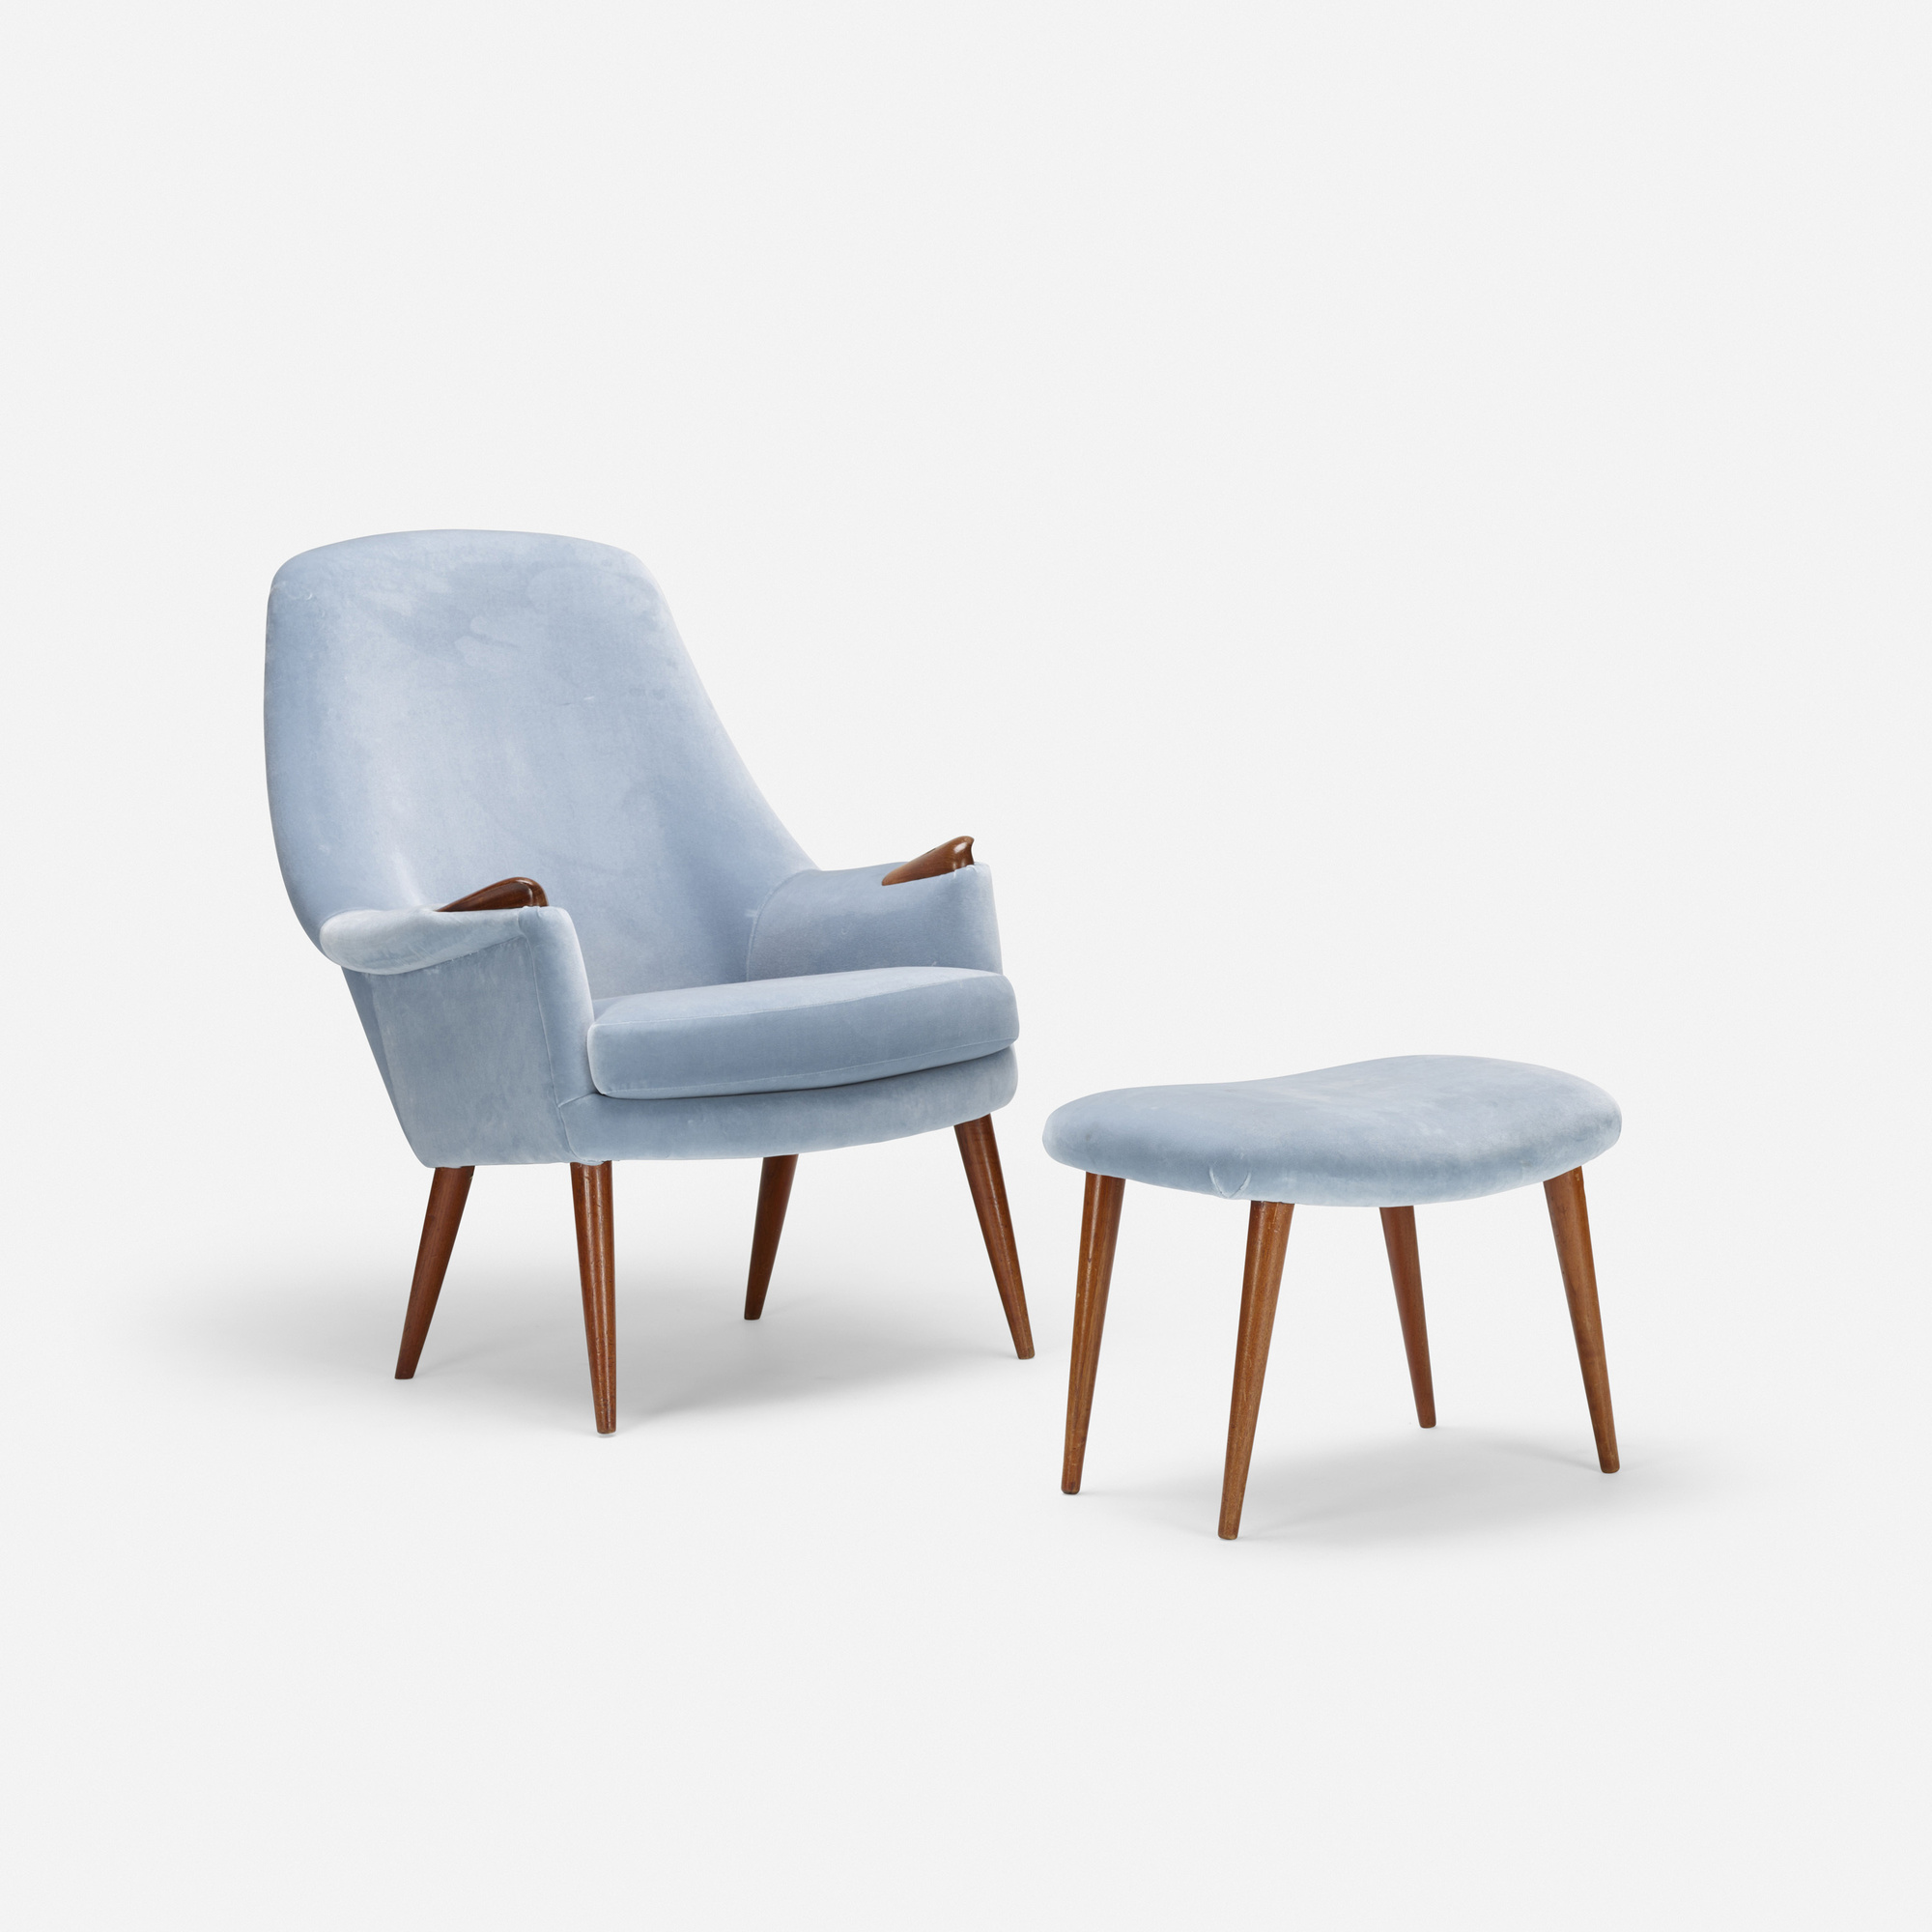 712: Scandinavian / lounge chair and ottoman (1 of 2)